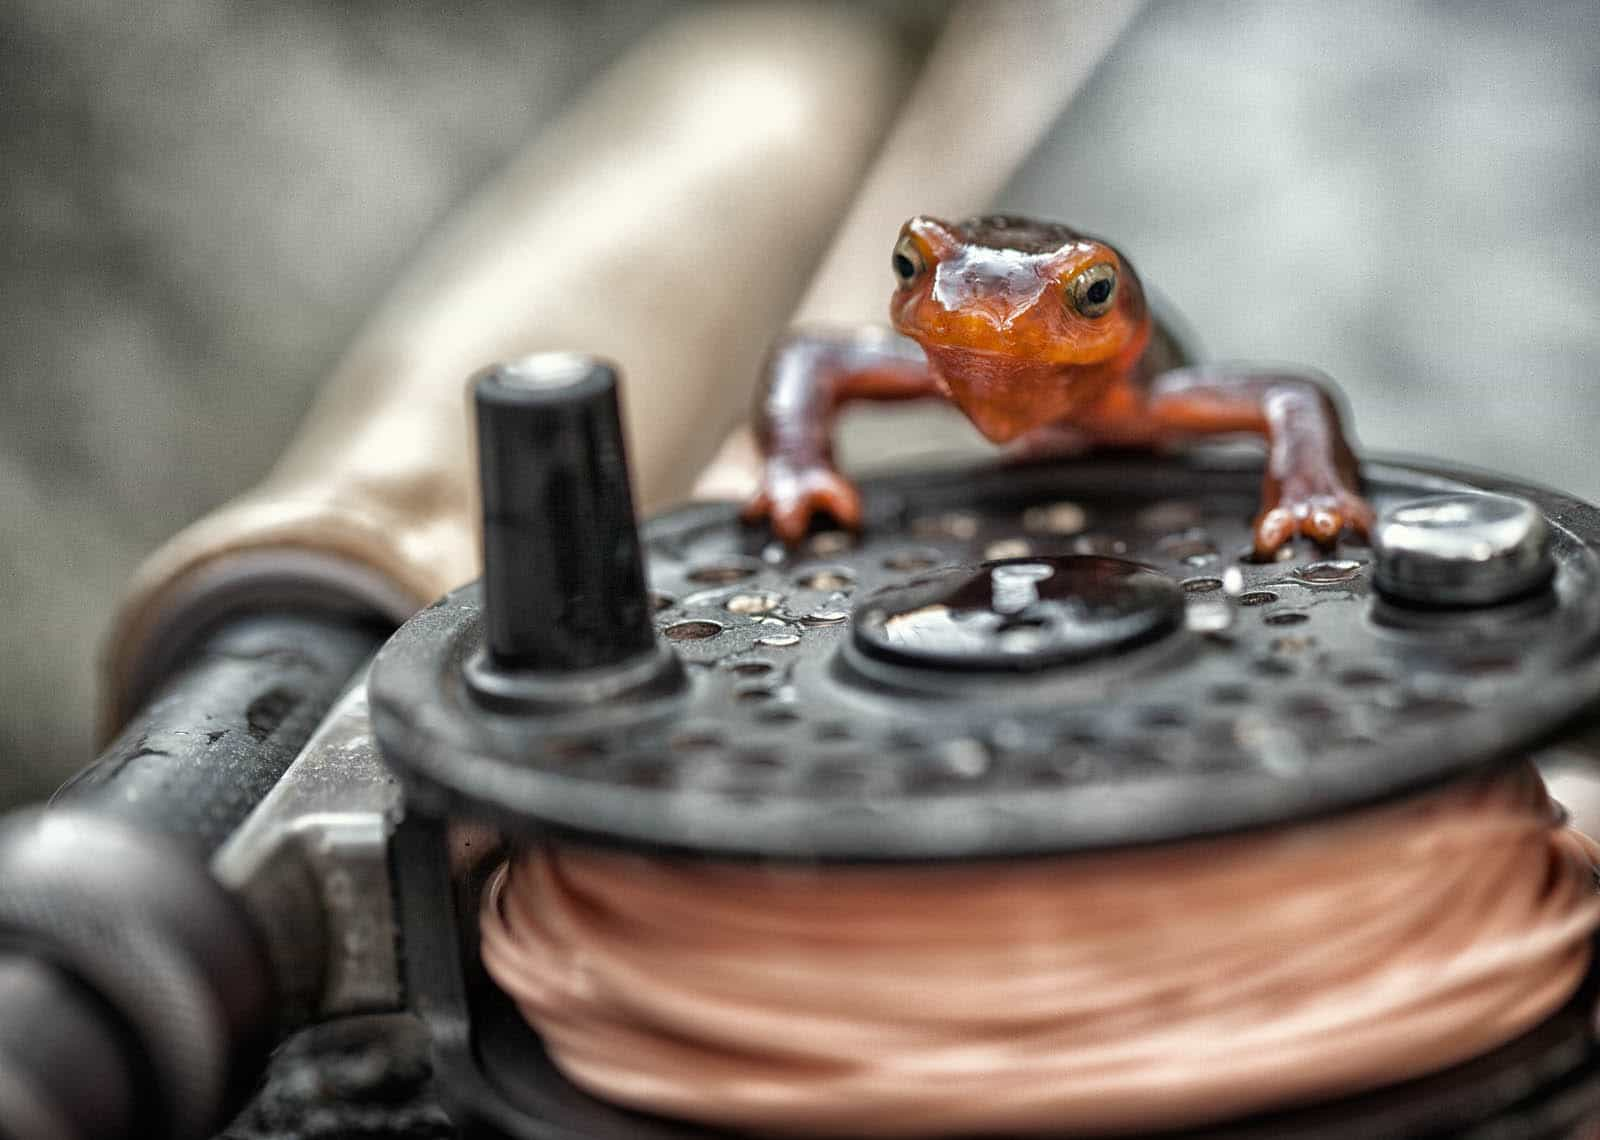 Newt on a reel.